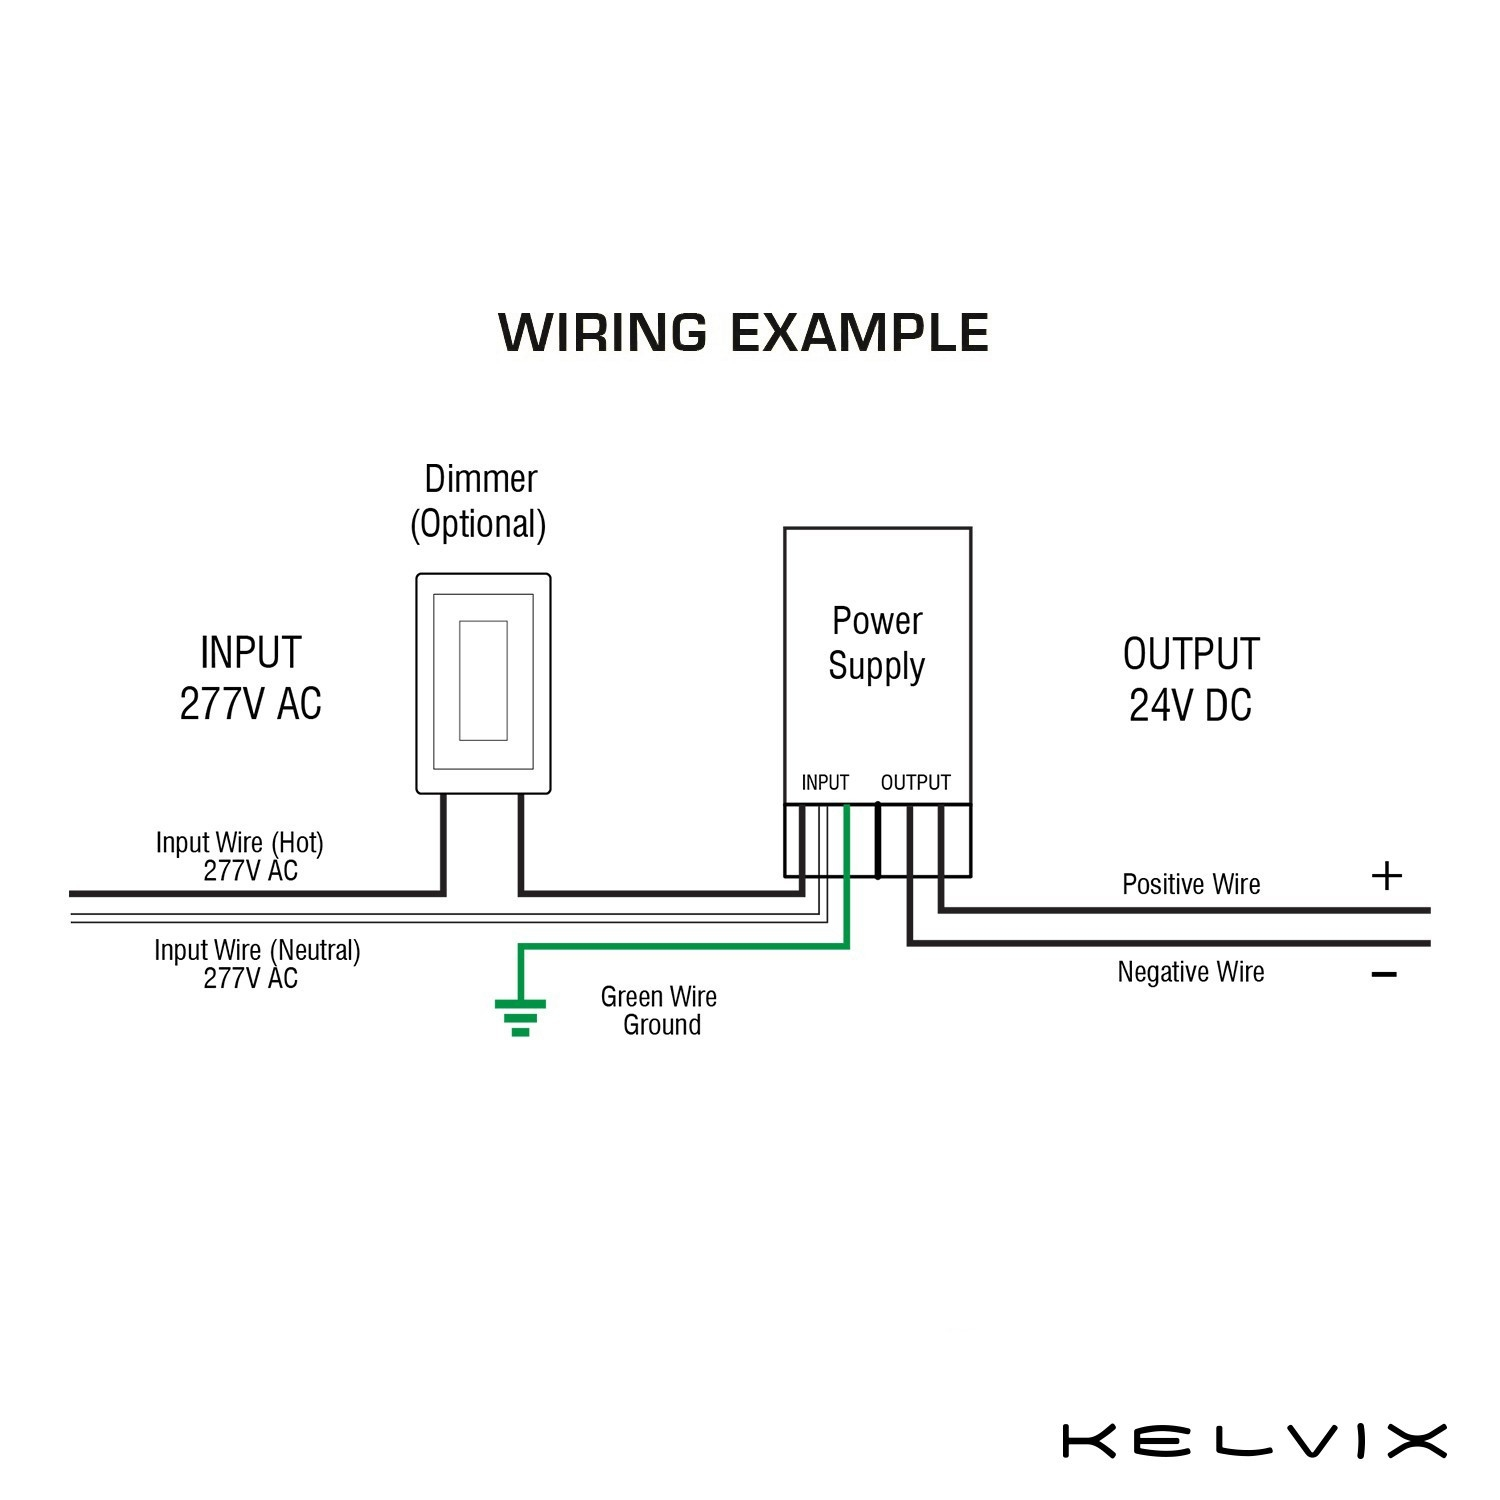 light fixture wiring diagram land rover discovery 4 diagrams 208v lighting 208 1 phase best library208 data